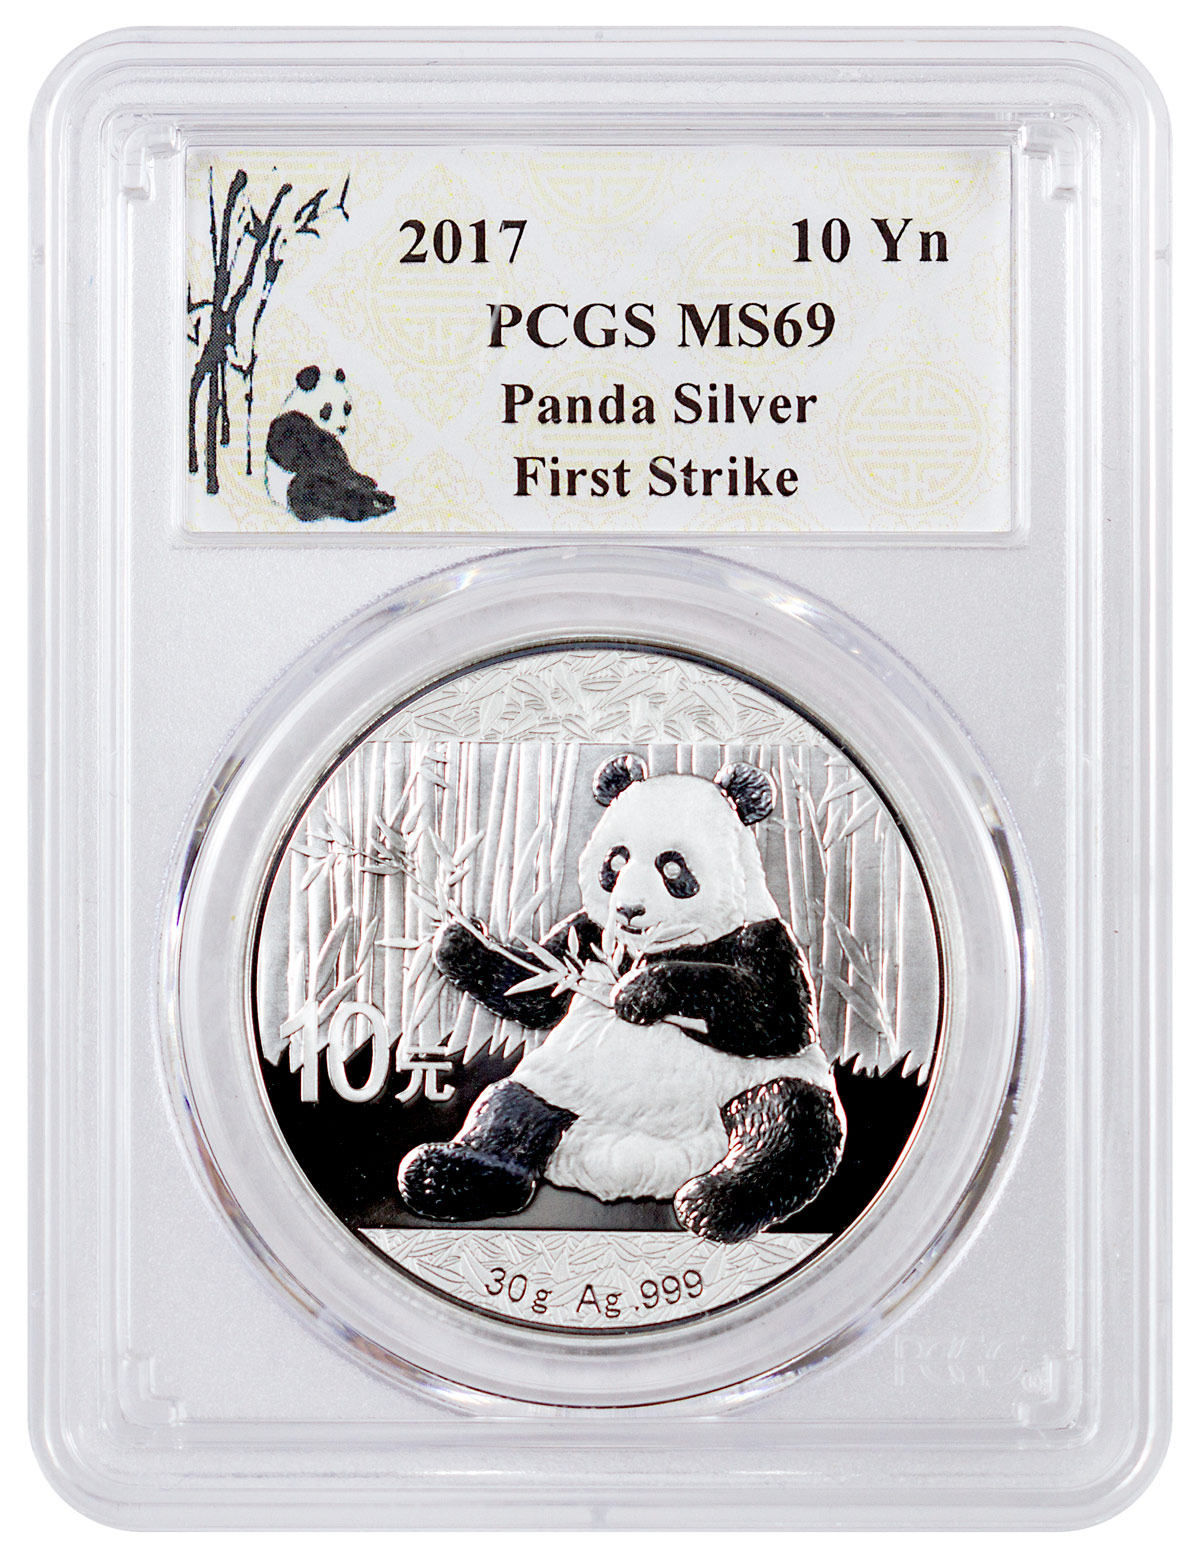 2017 China 30 g Silver Panda ¥10 Coin PCGS MS69 FS (Panda Label)